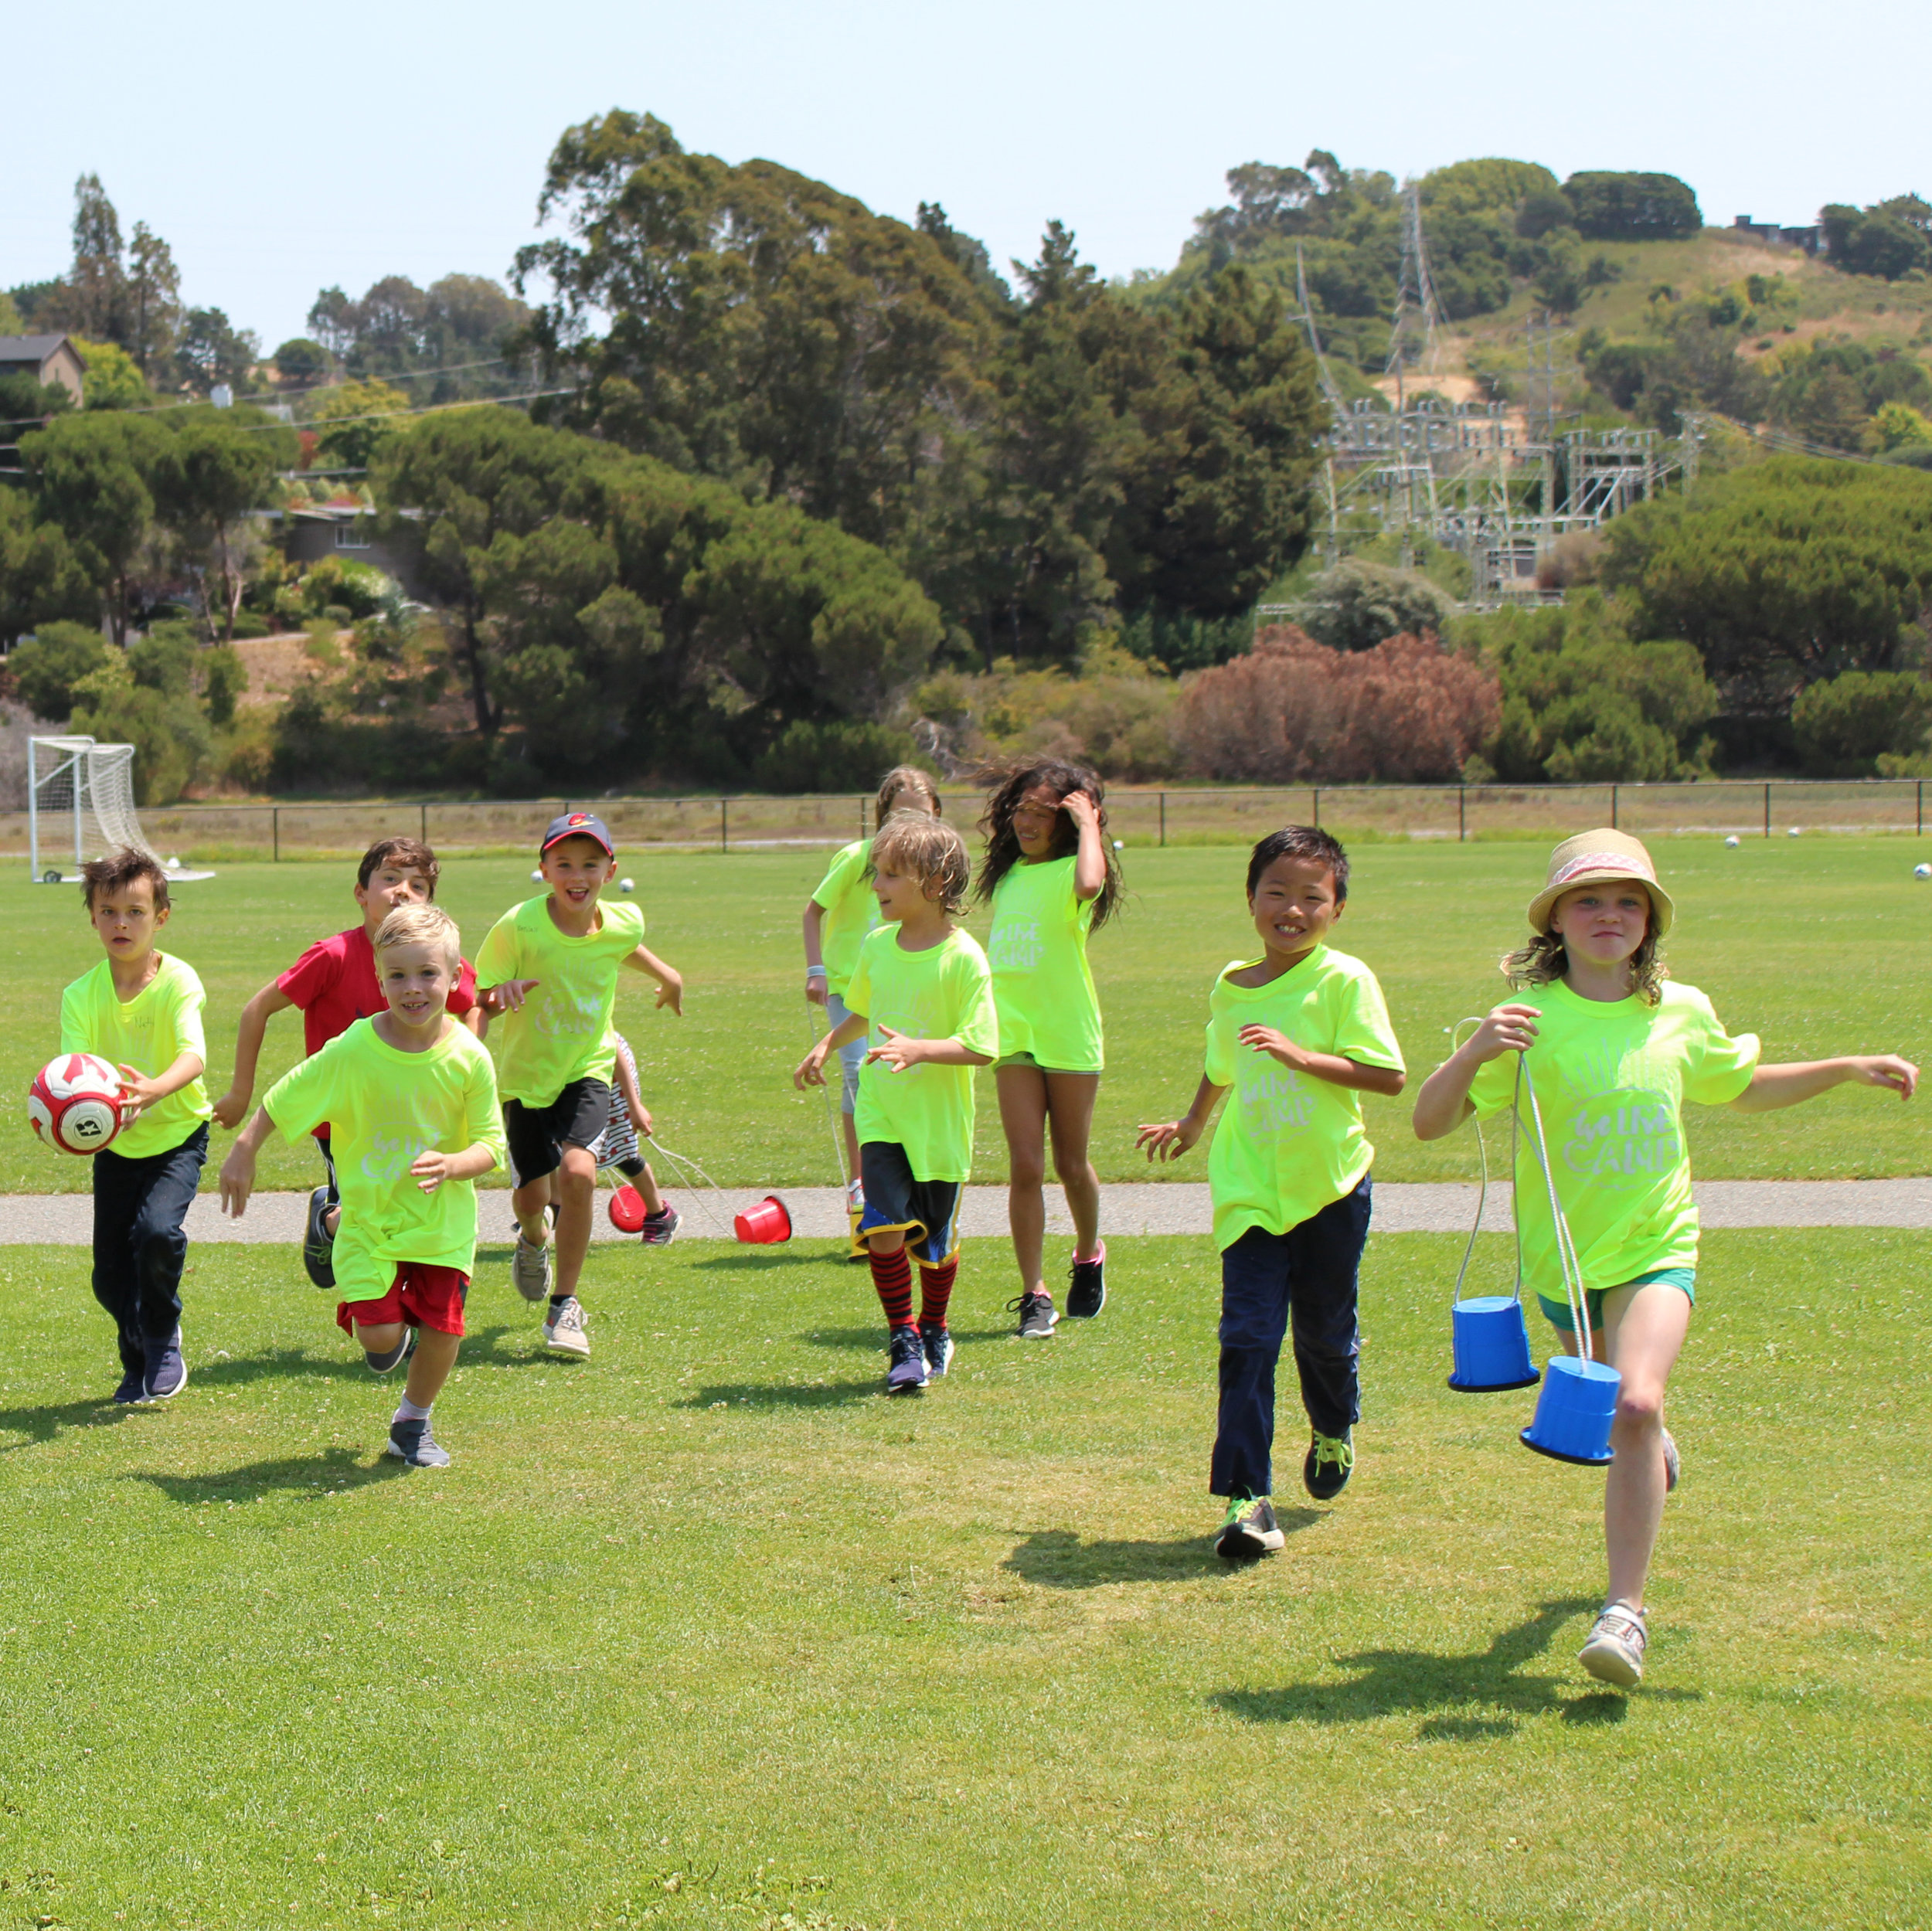 Spring Camps - Have your best break away from school ever with Mill Valley Recreation Spring Day Camps!